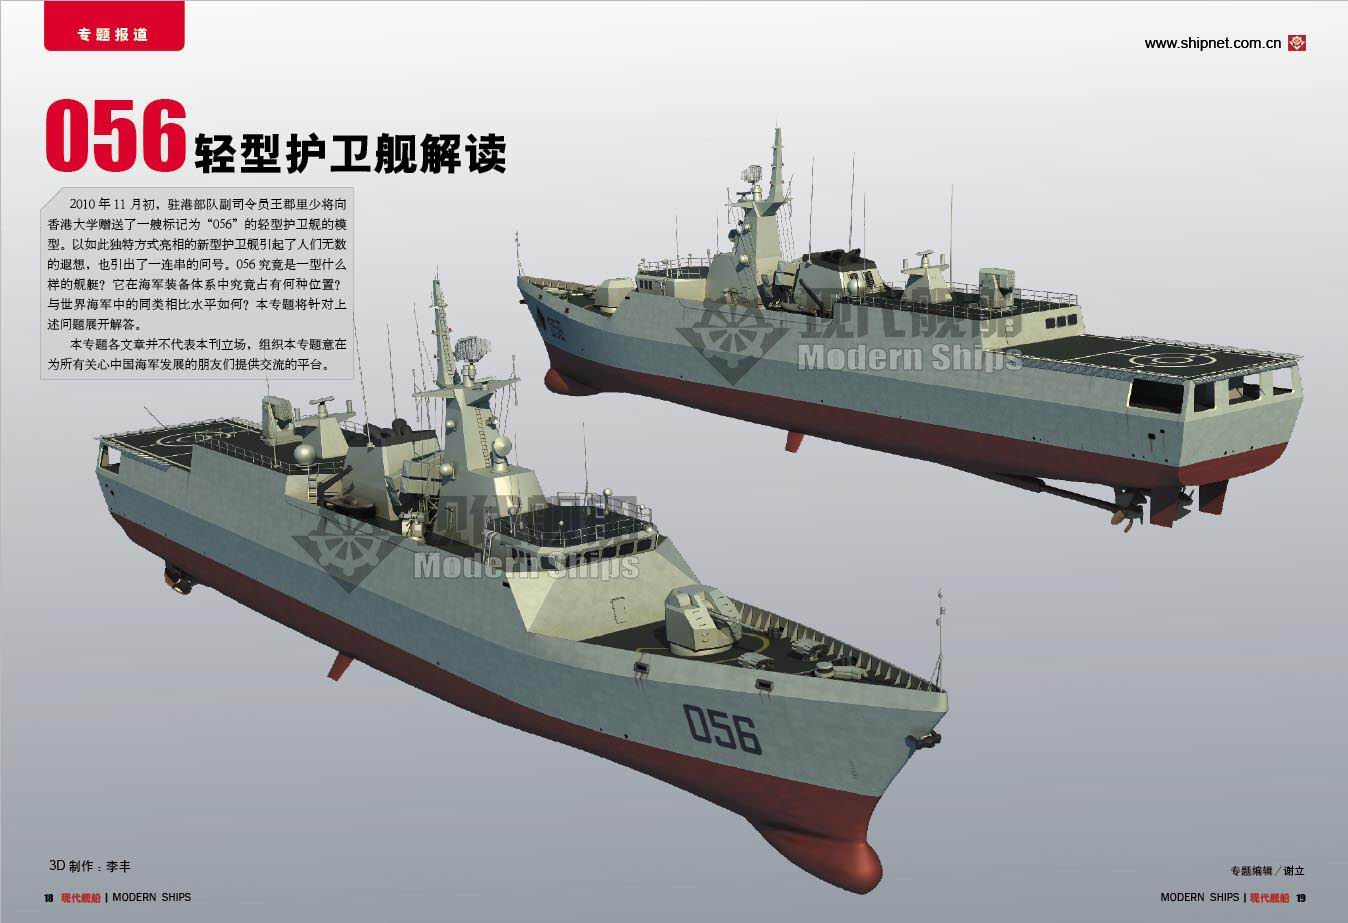 china stealth helicopter with Chinas Continues Work To Nuclear on Type 052d Ddg Consolidates Innovations in addition 6 American Super Weapons Stolen China additionally Iran Fake Aircraft Carrier additionally Watch moreover Who Makes Better Fighter Jet Ejection Seats The Americans Or The Russians.